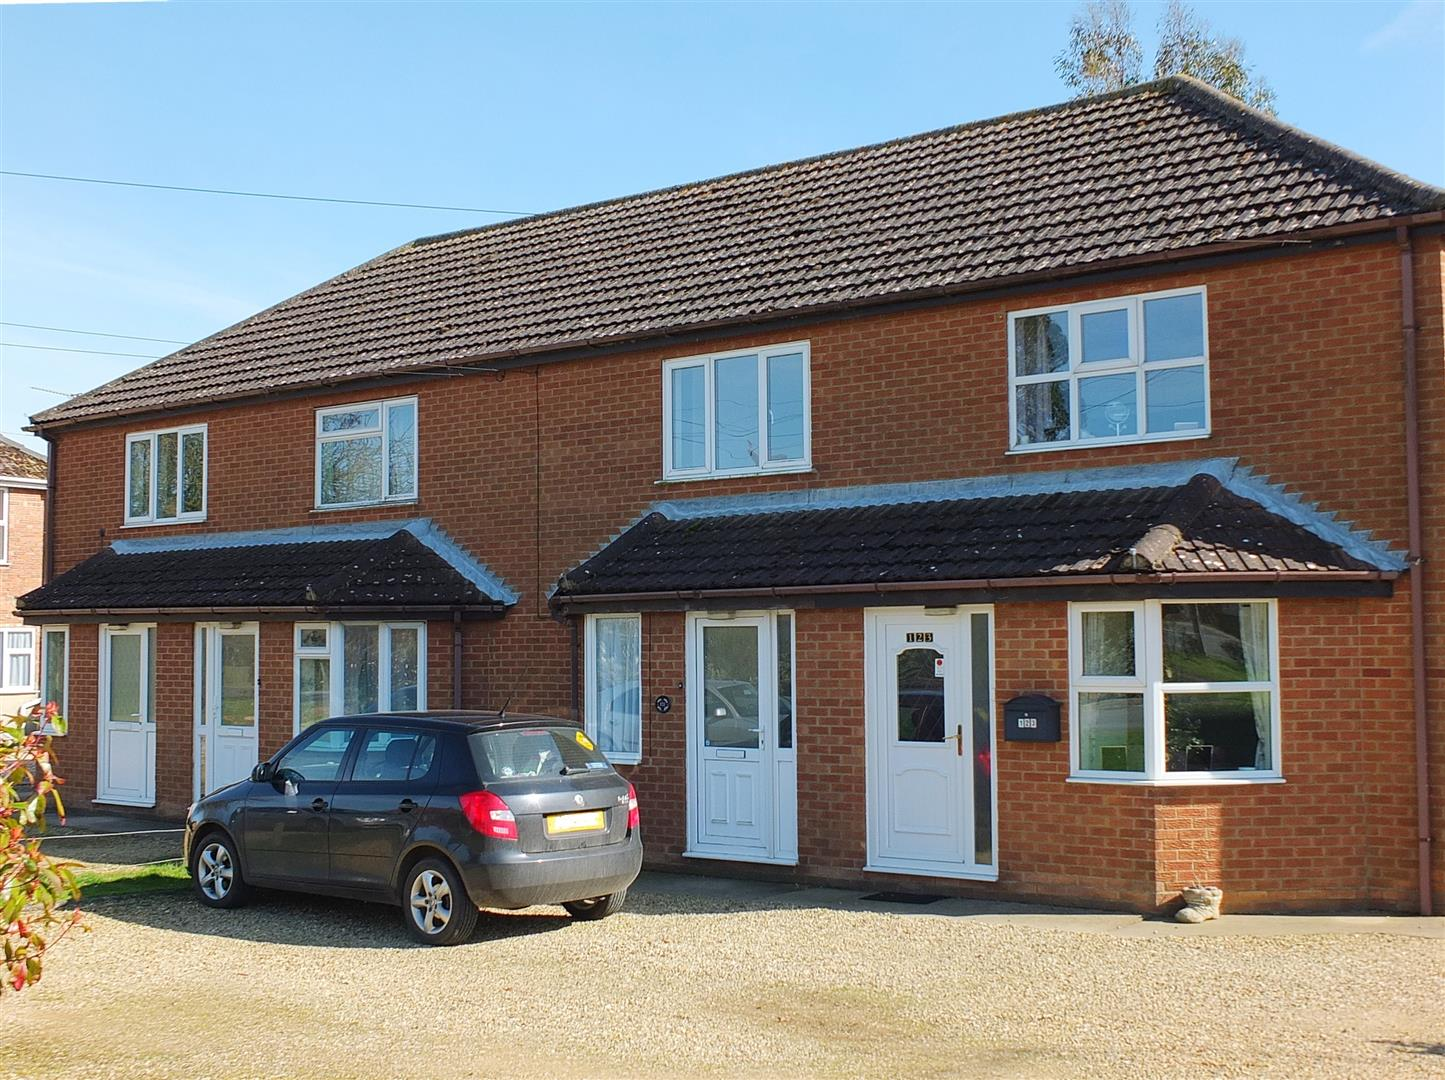 2 bed terraced house for sale in Chapelgate, Sutton St. James Spalding, PE12